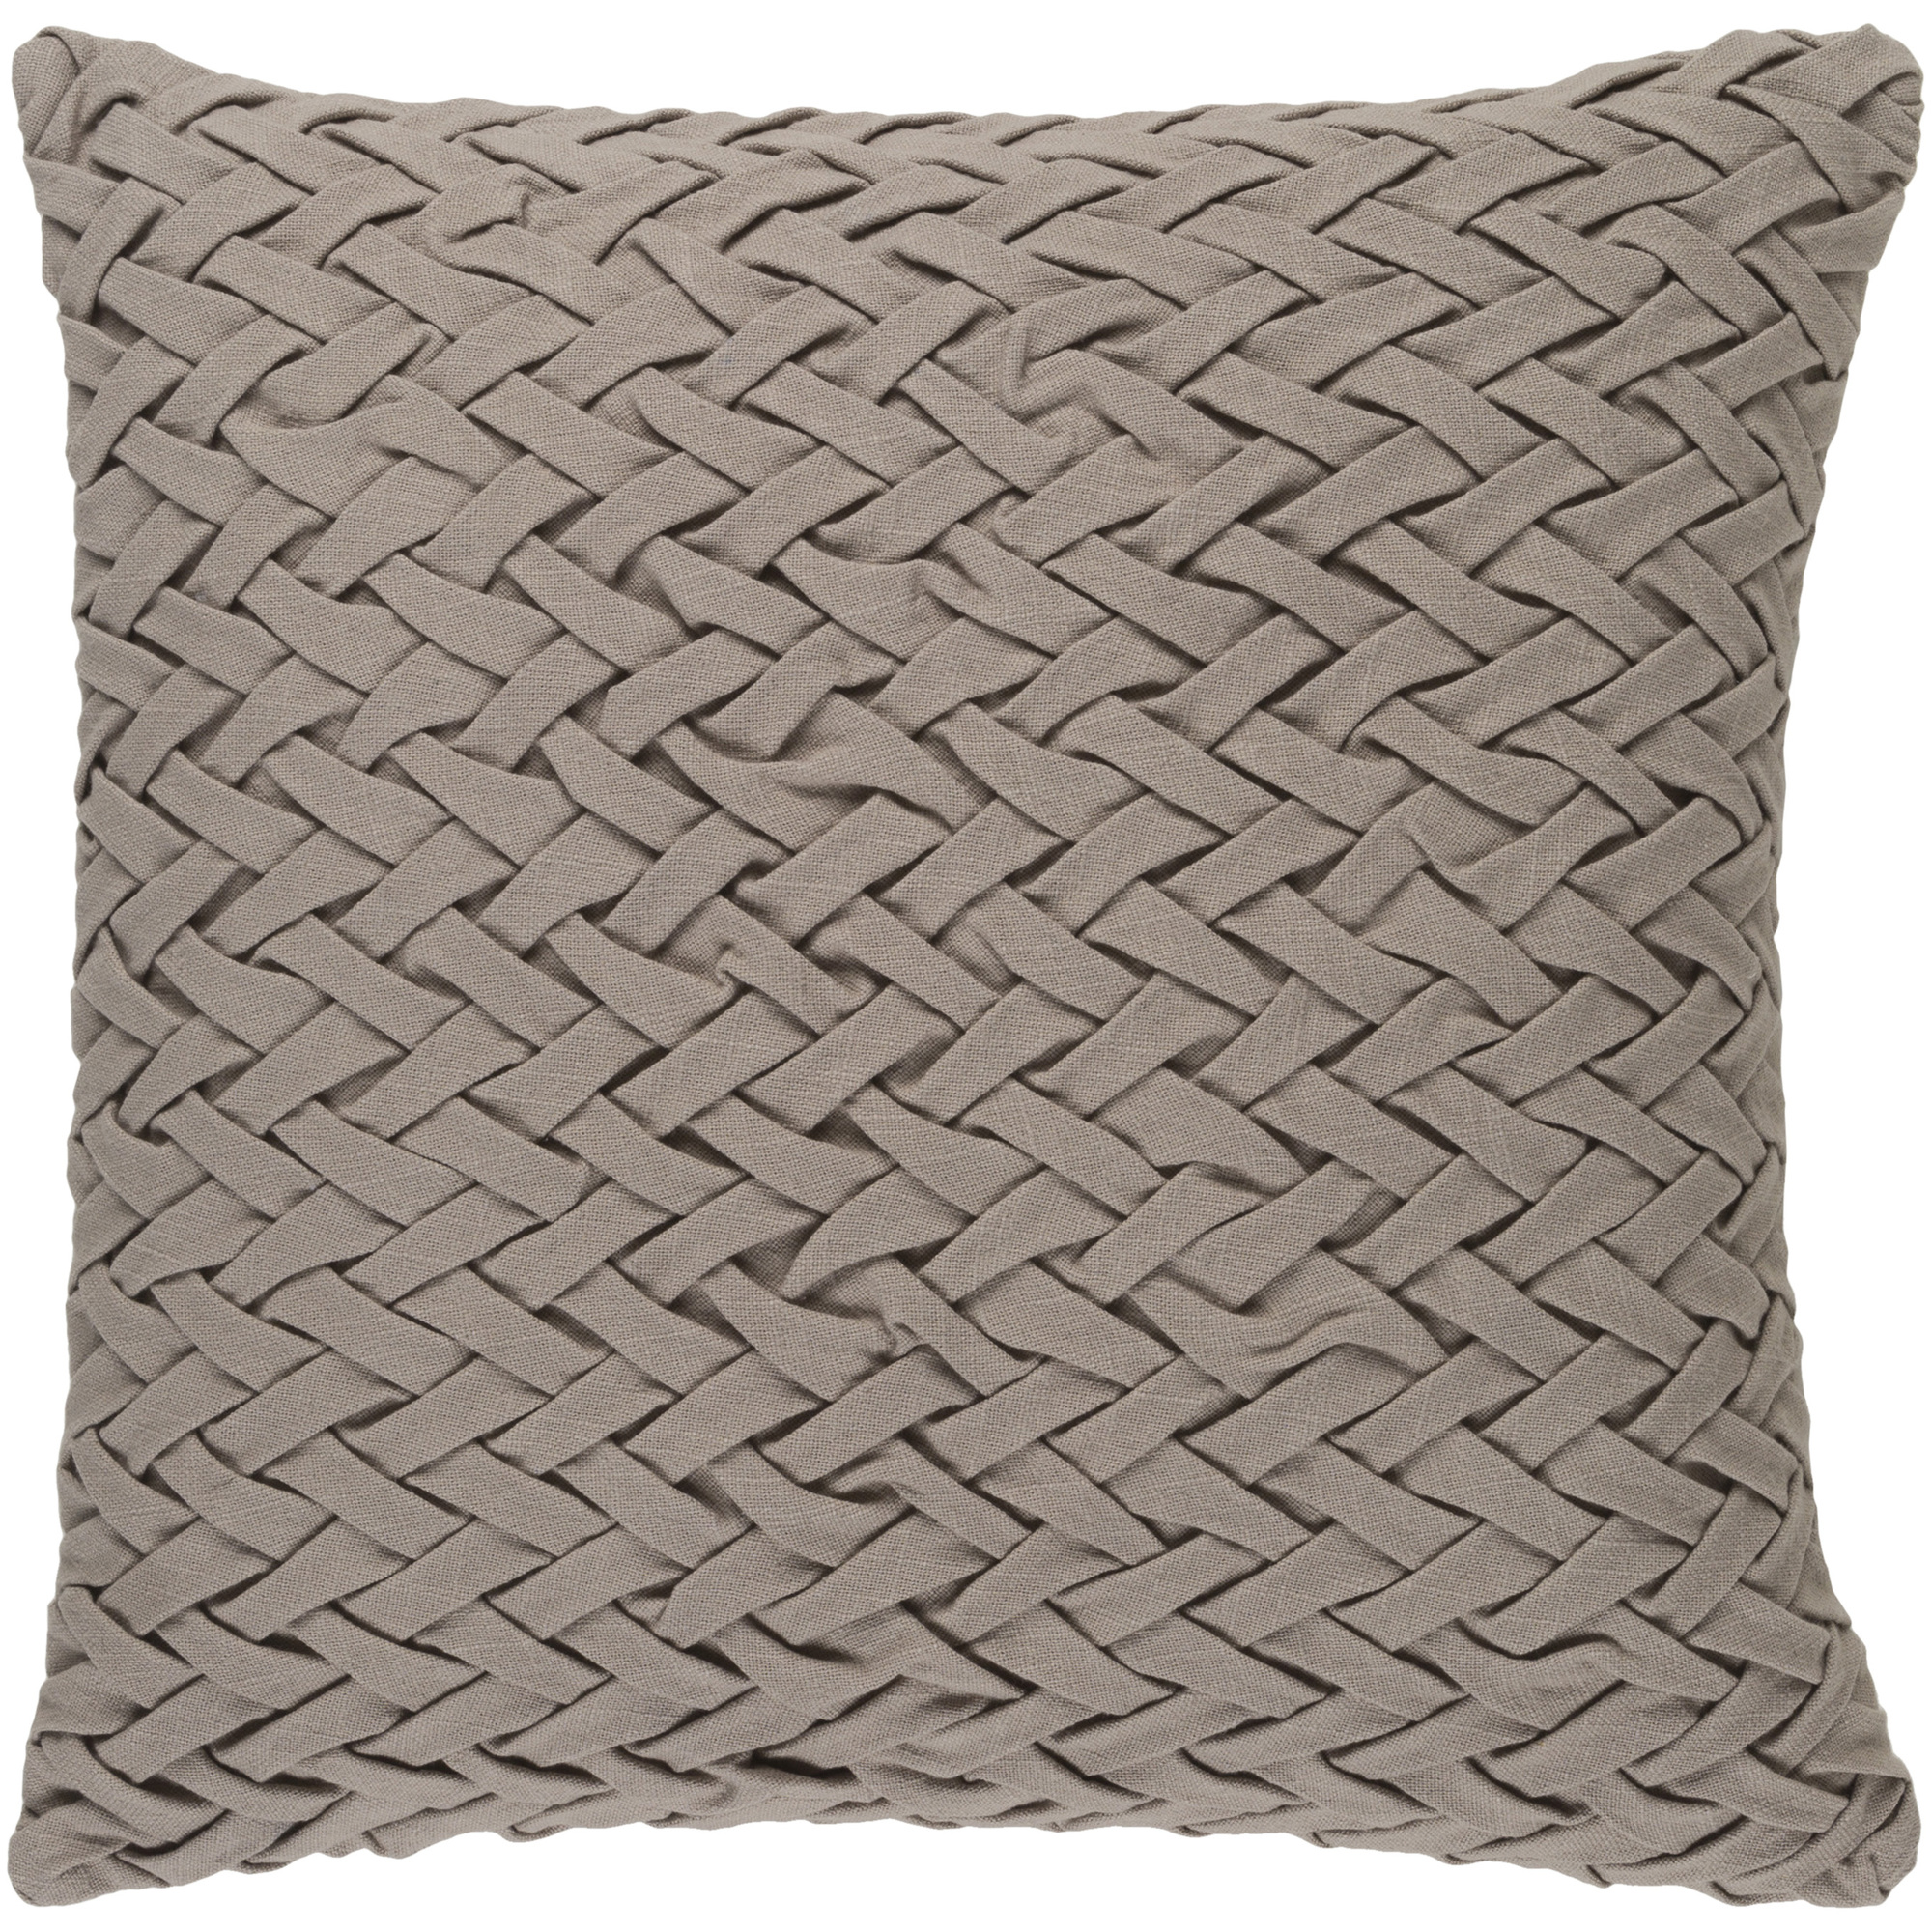 "Art of Knot Bendmore 18"" x 18"" Pillow Cover"